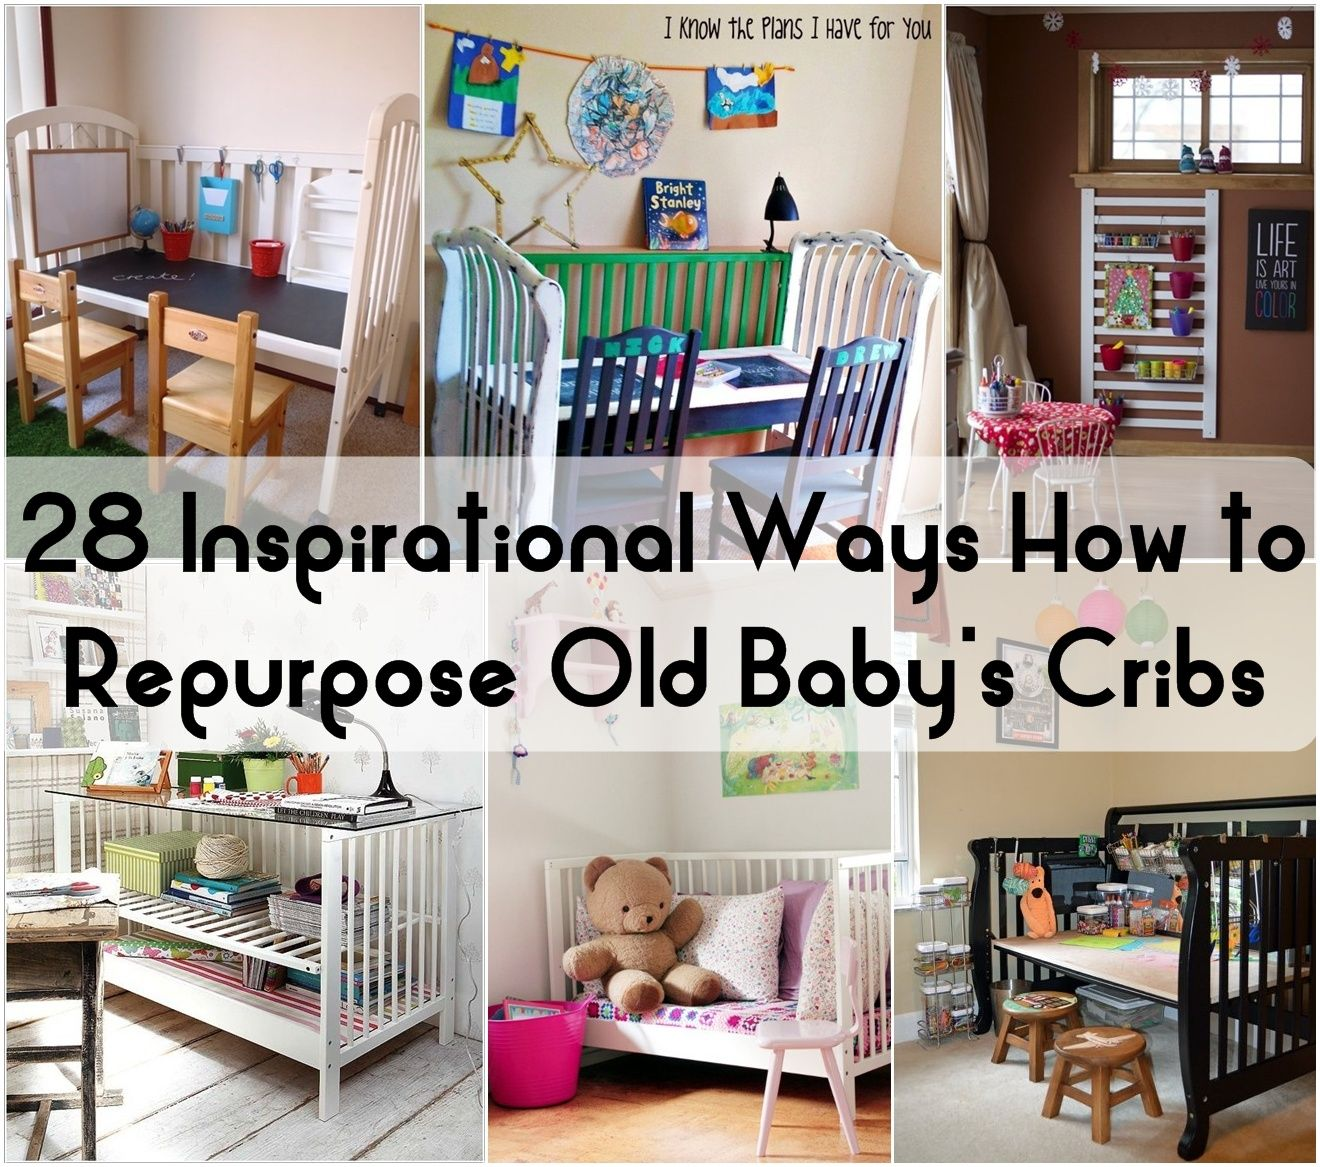 28 Inspirational Ways How To Repurpose Old Baby S Cribs Baby Crib Diy Cribs Repurpose Diy Crib